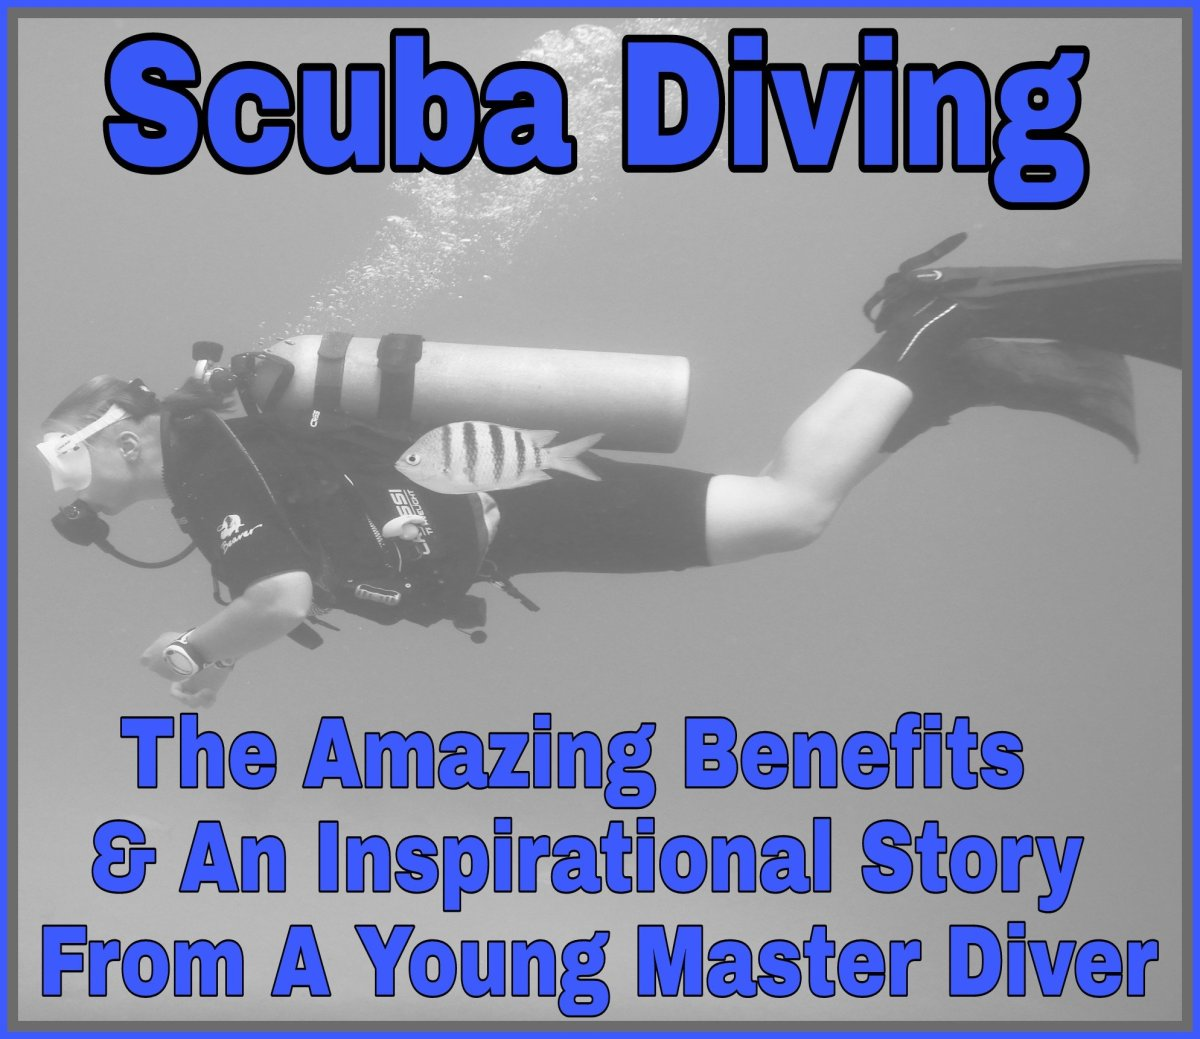 Scuba Diving: The Amazing Benefits & An Inspirational Story From Grace, Junior Master Diver